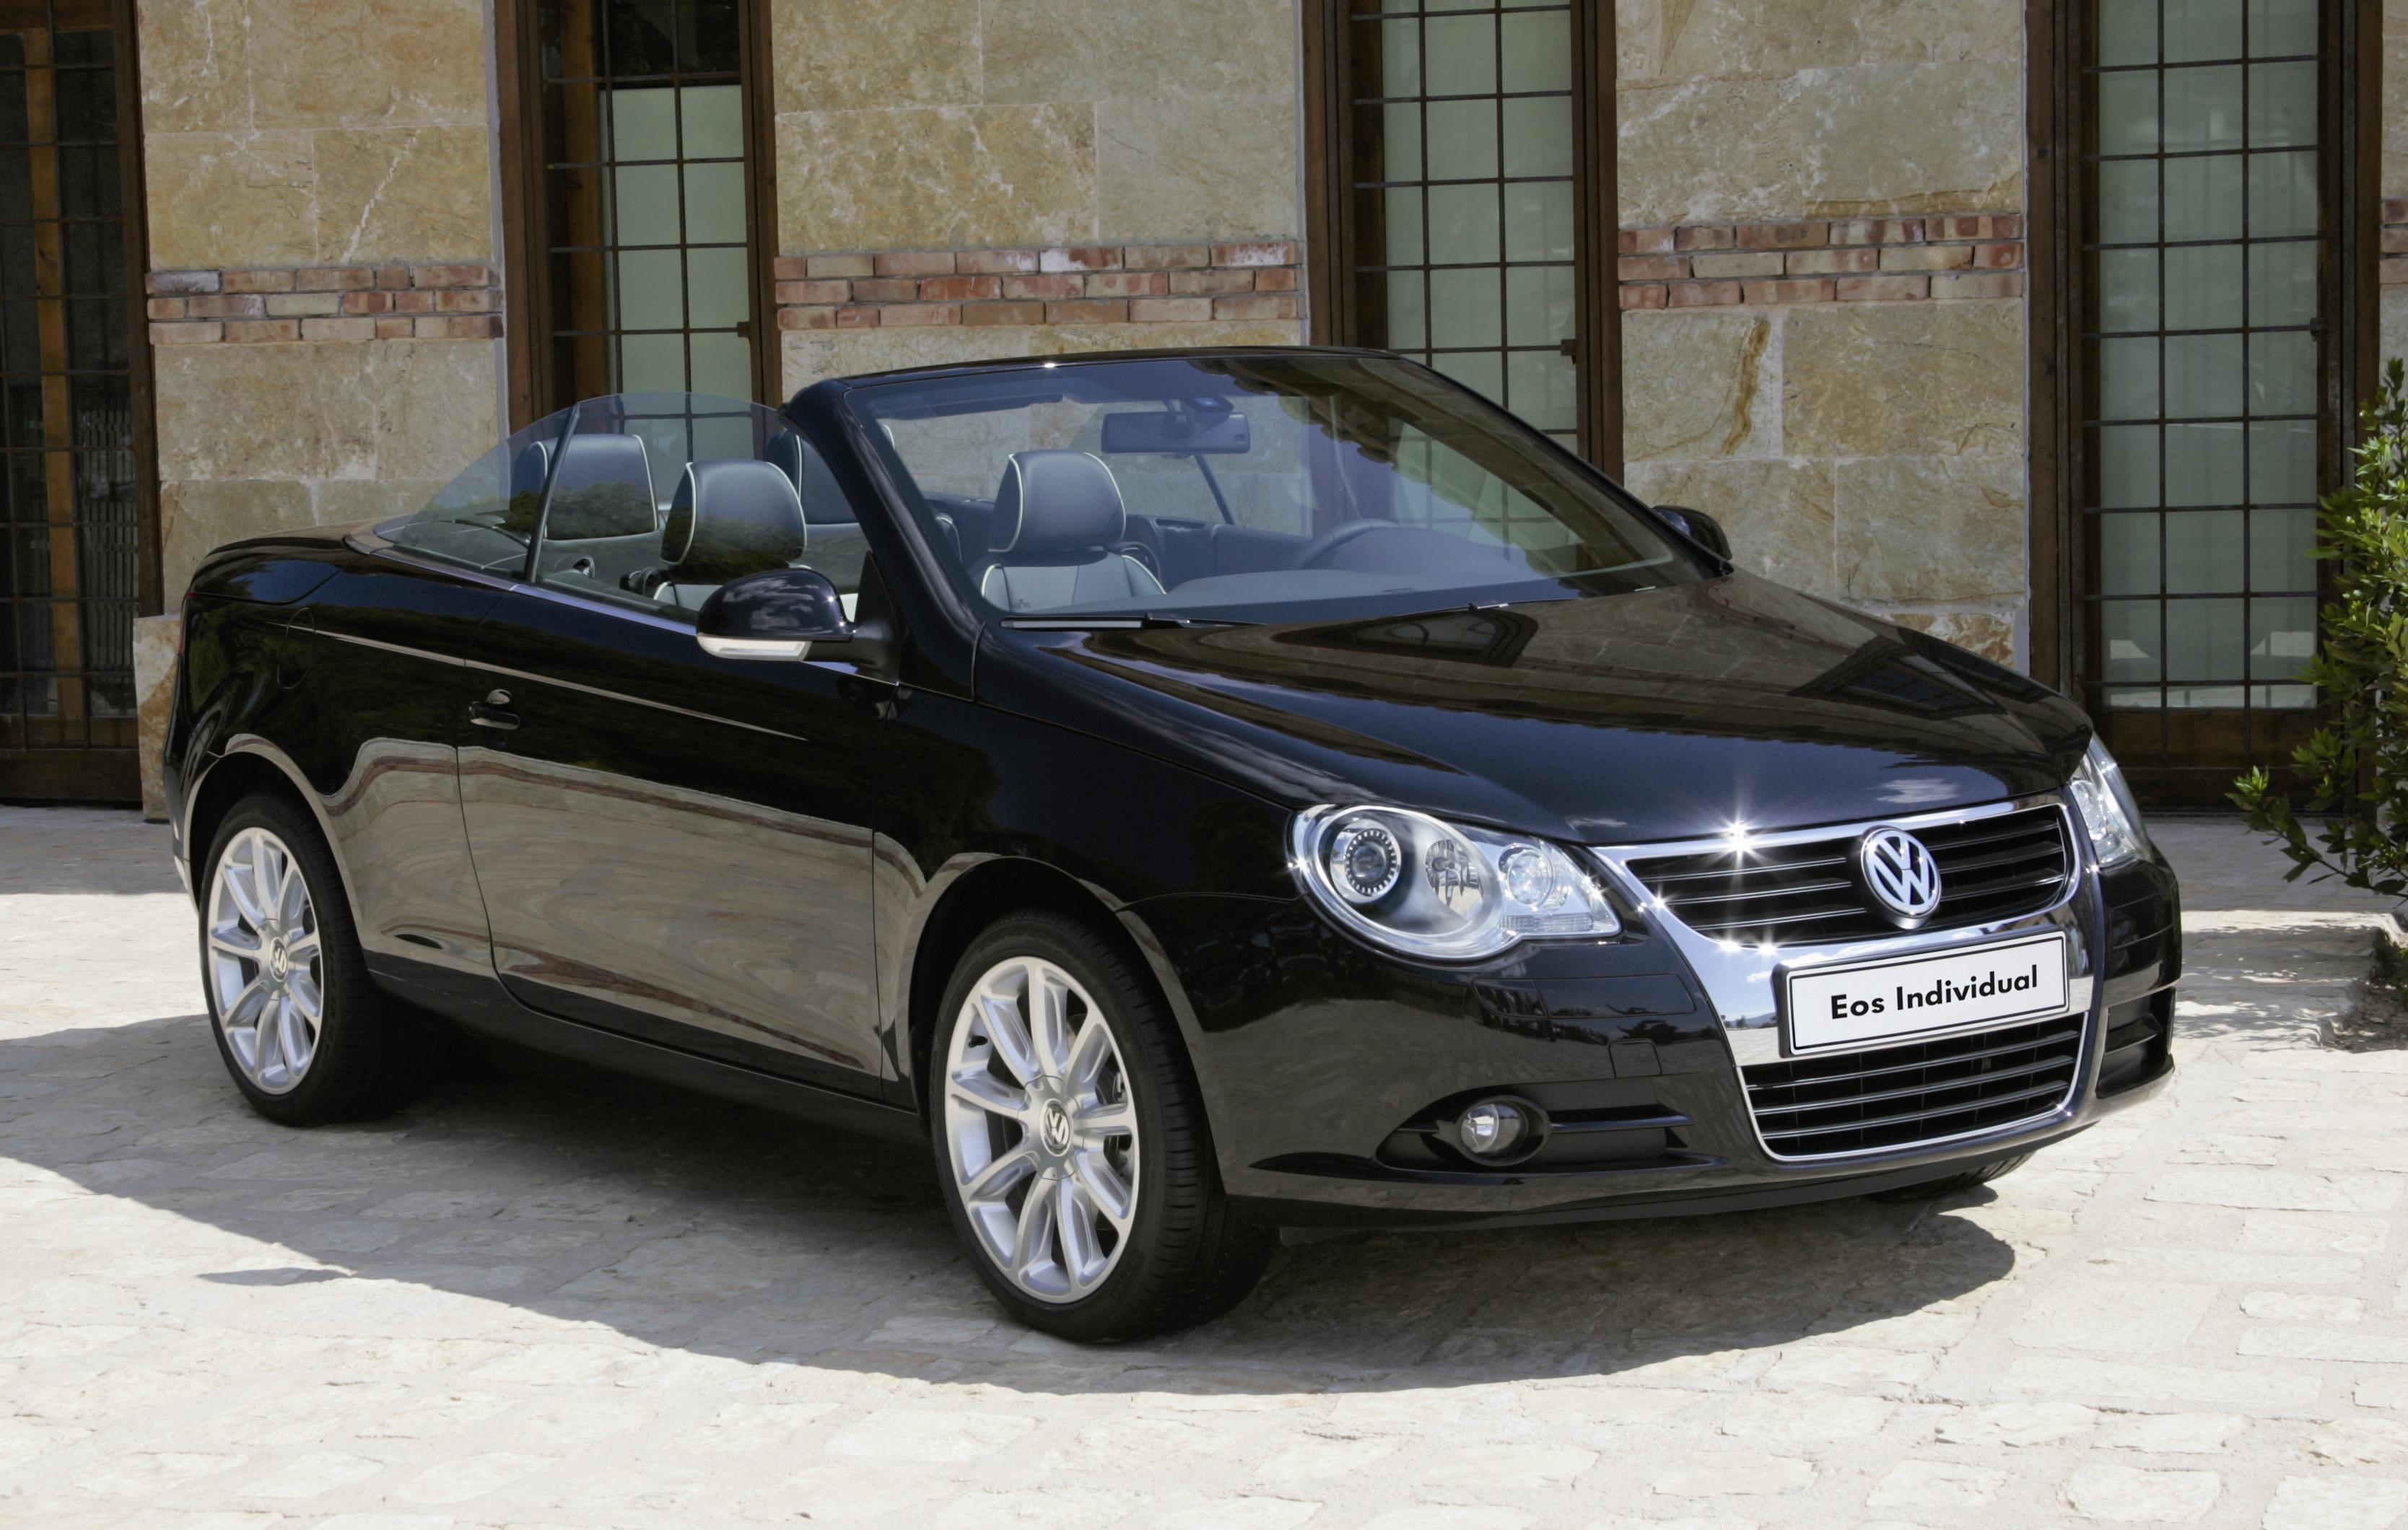 2007 Volkswagen Eos Individual | Top Speed